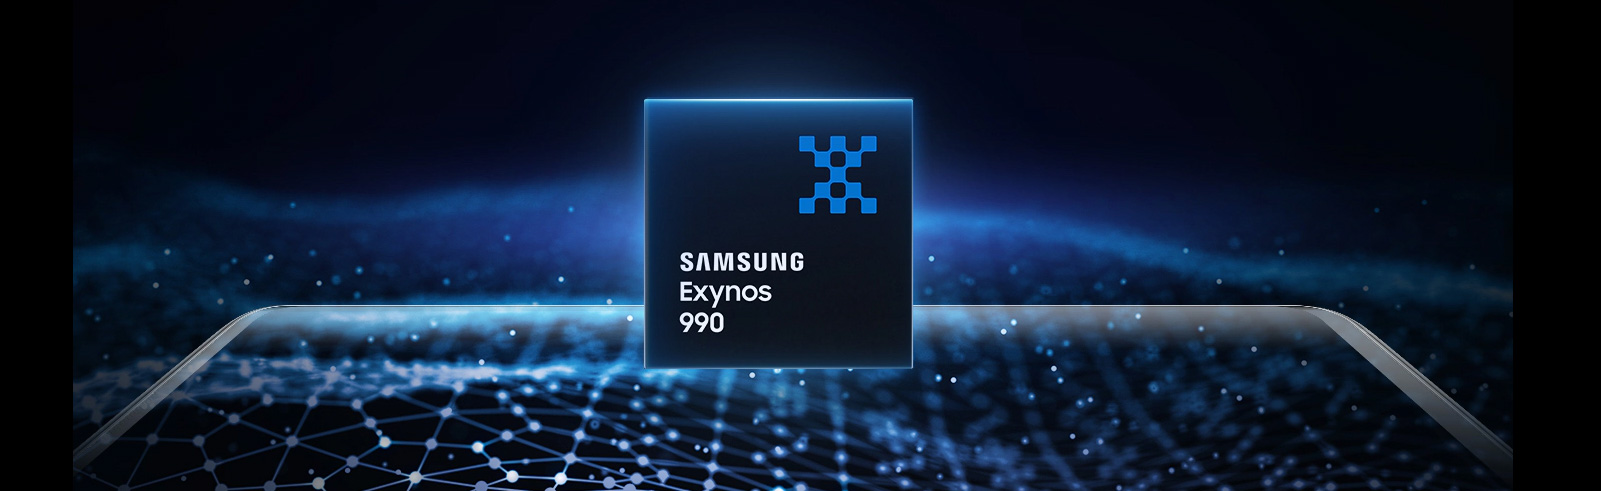 Samsung unveils the Exynos 990 chipset for mobiles